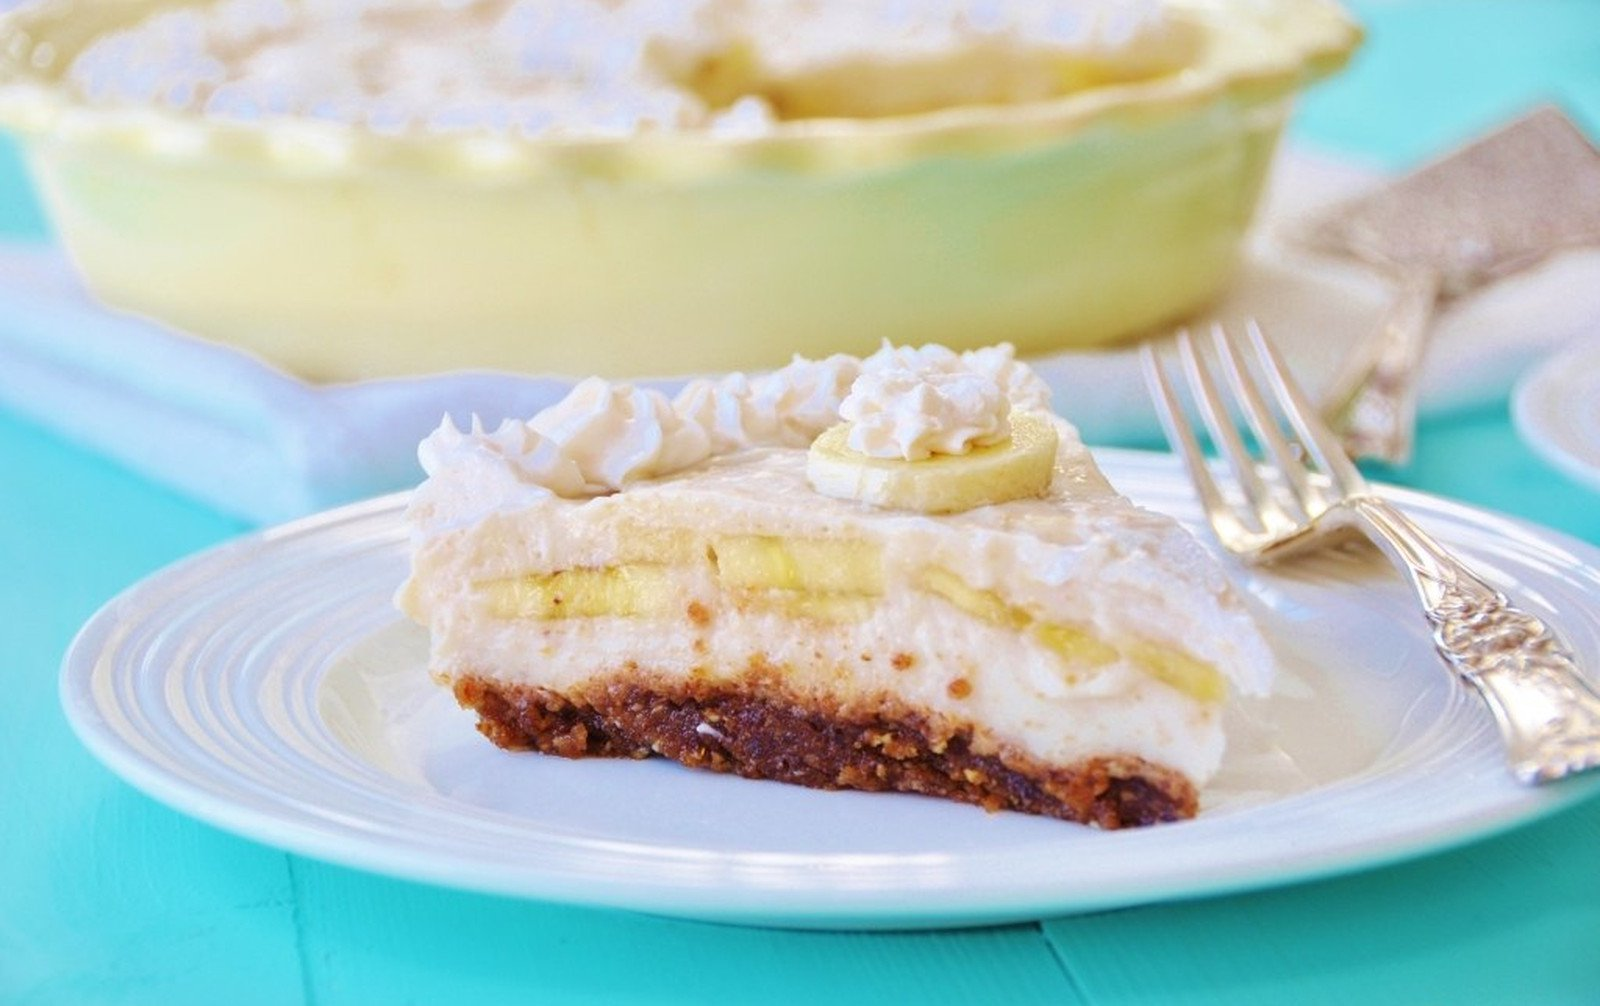 10 Decadent and Creamy Pies That are Delicious and Dairy-Free